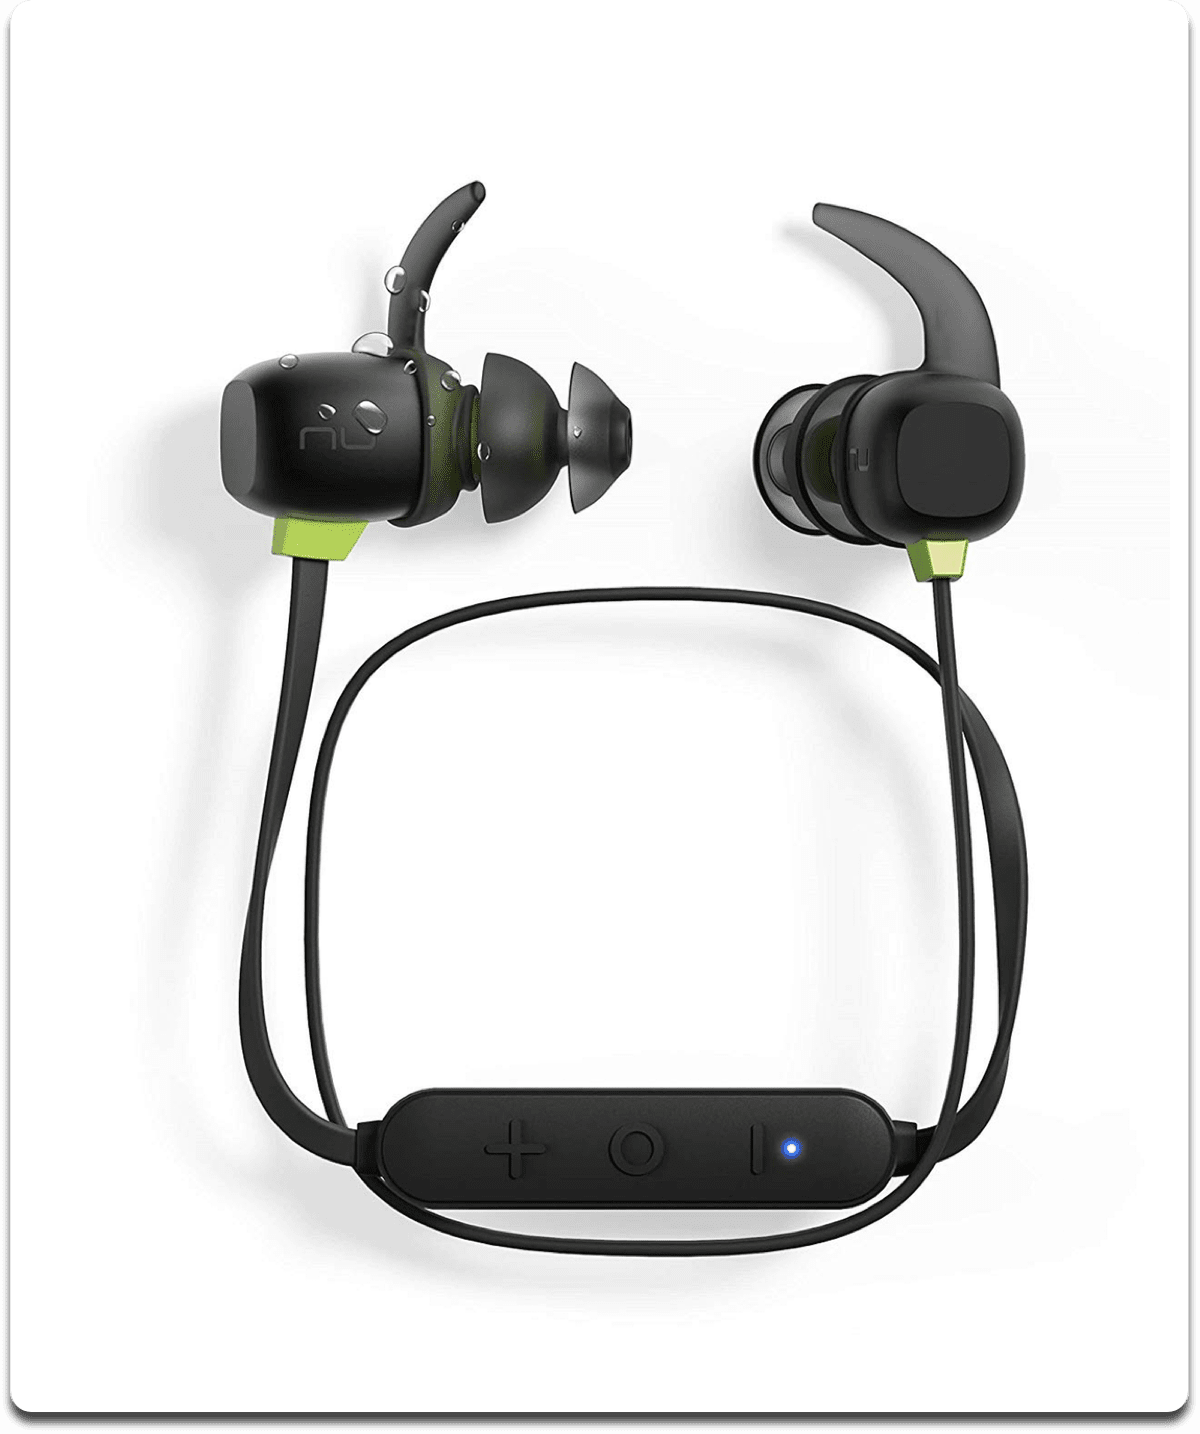 Image of Optoma NuForce sport headphones.